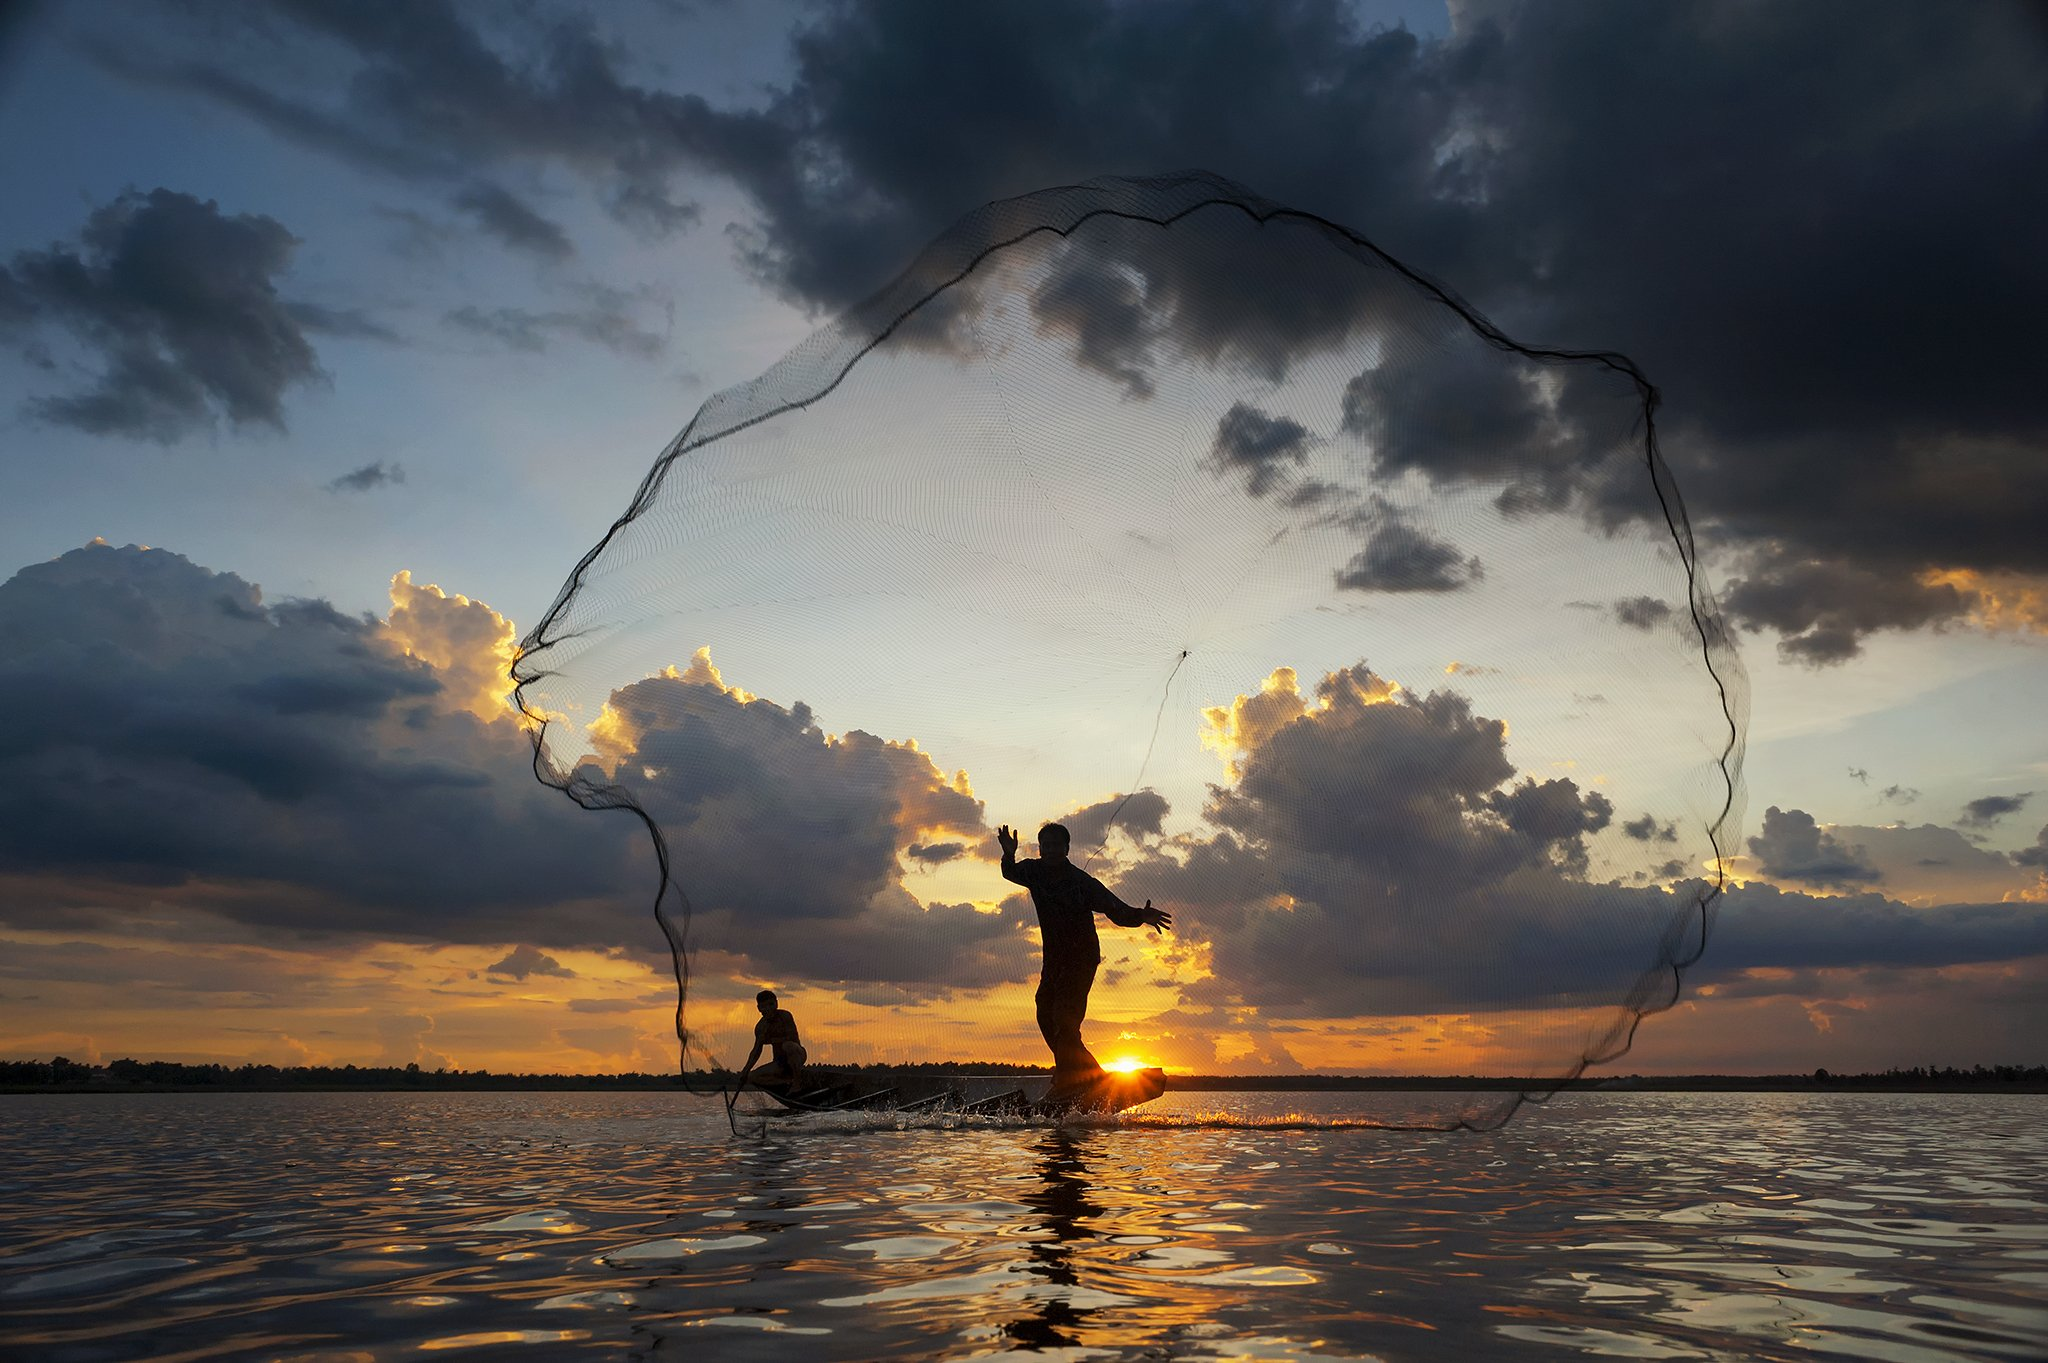 Action, Asia, Asian, Clouds, Colors, Concept, Culture, Fish, Fisherman, Fishing, Kingfisher, Moment, Nets, Ocean, Sea, Sky, Sun, Sunlight, Sunrise, Sunset, Water, Saravut Whanset